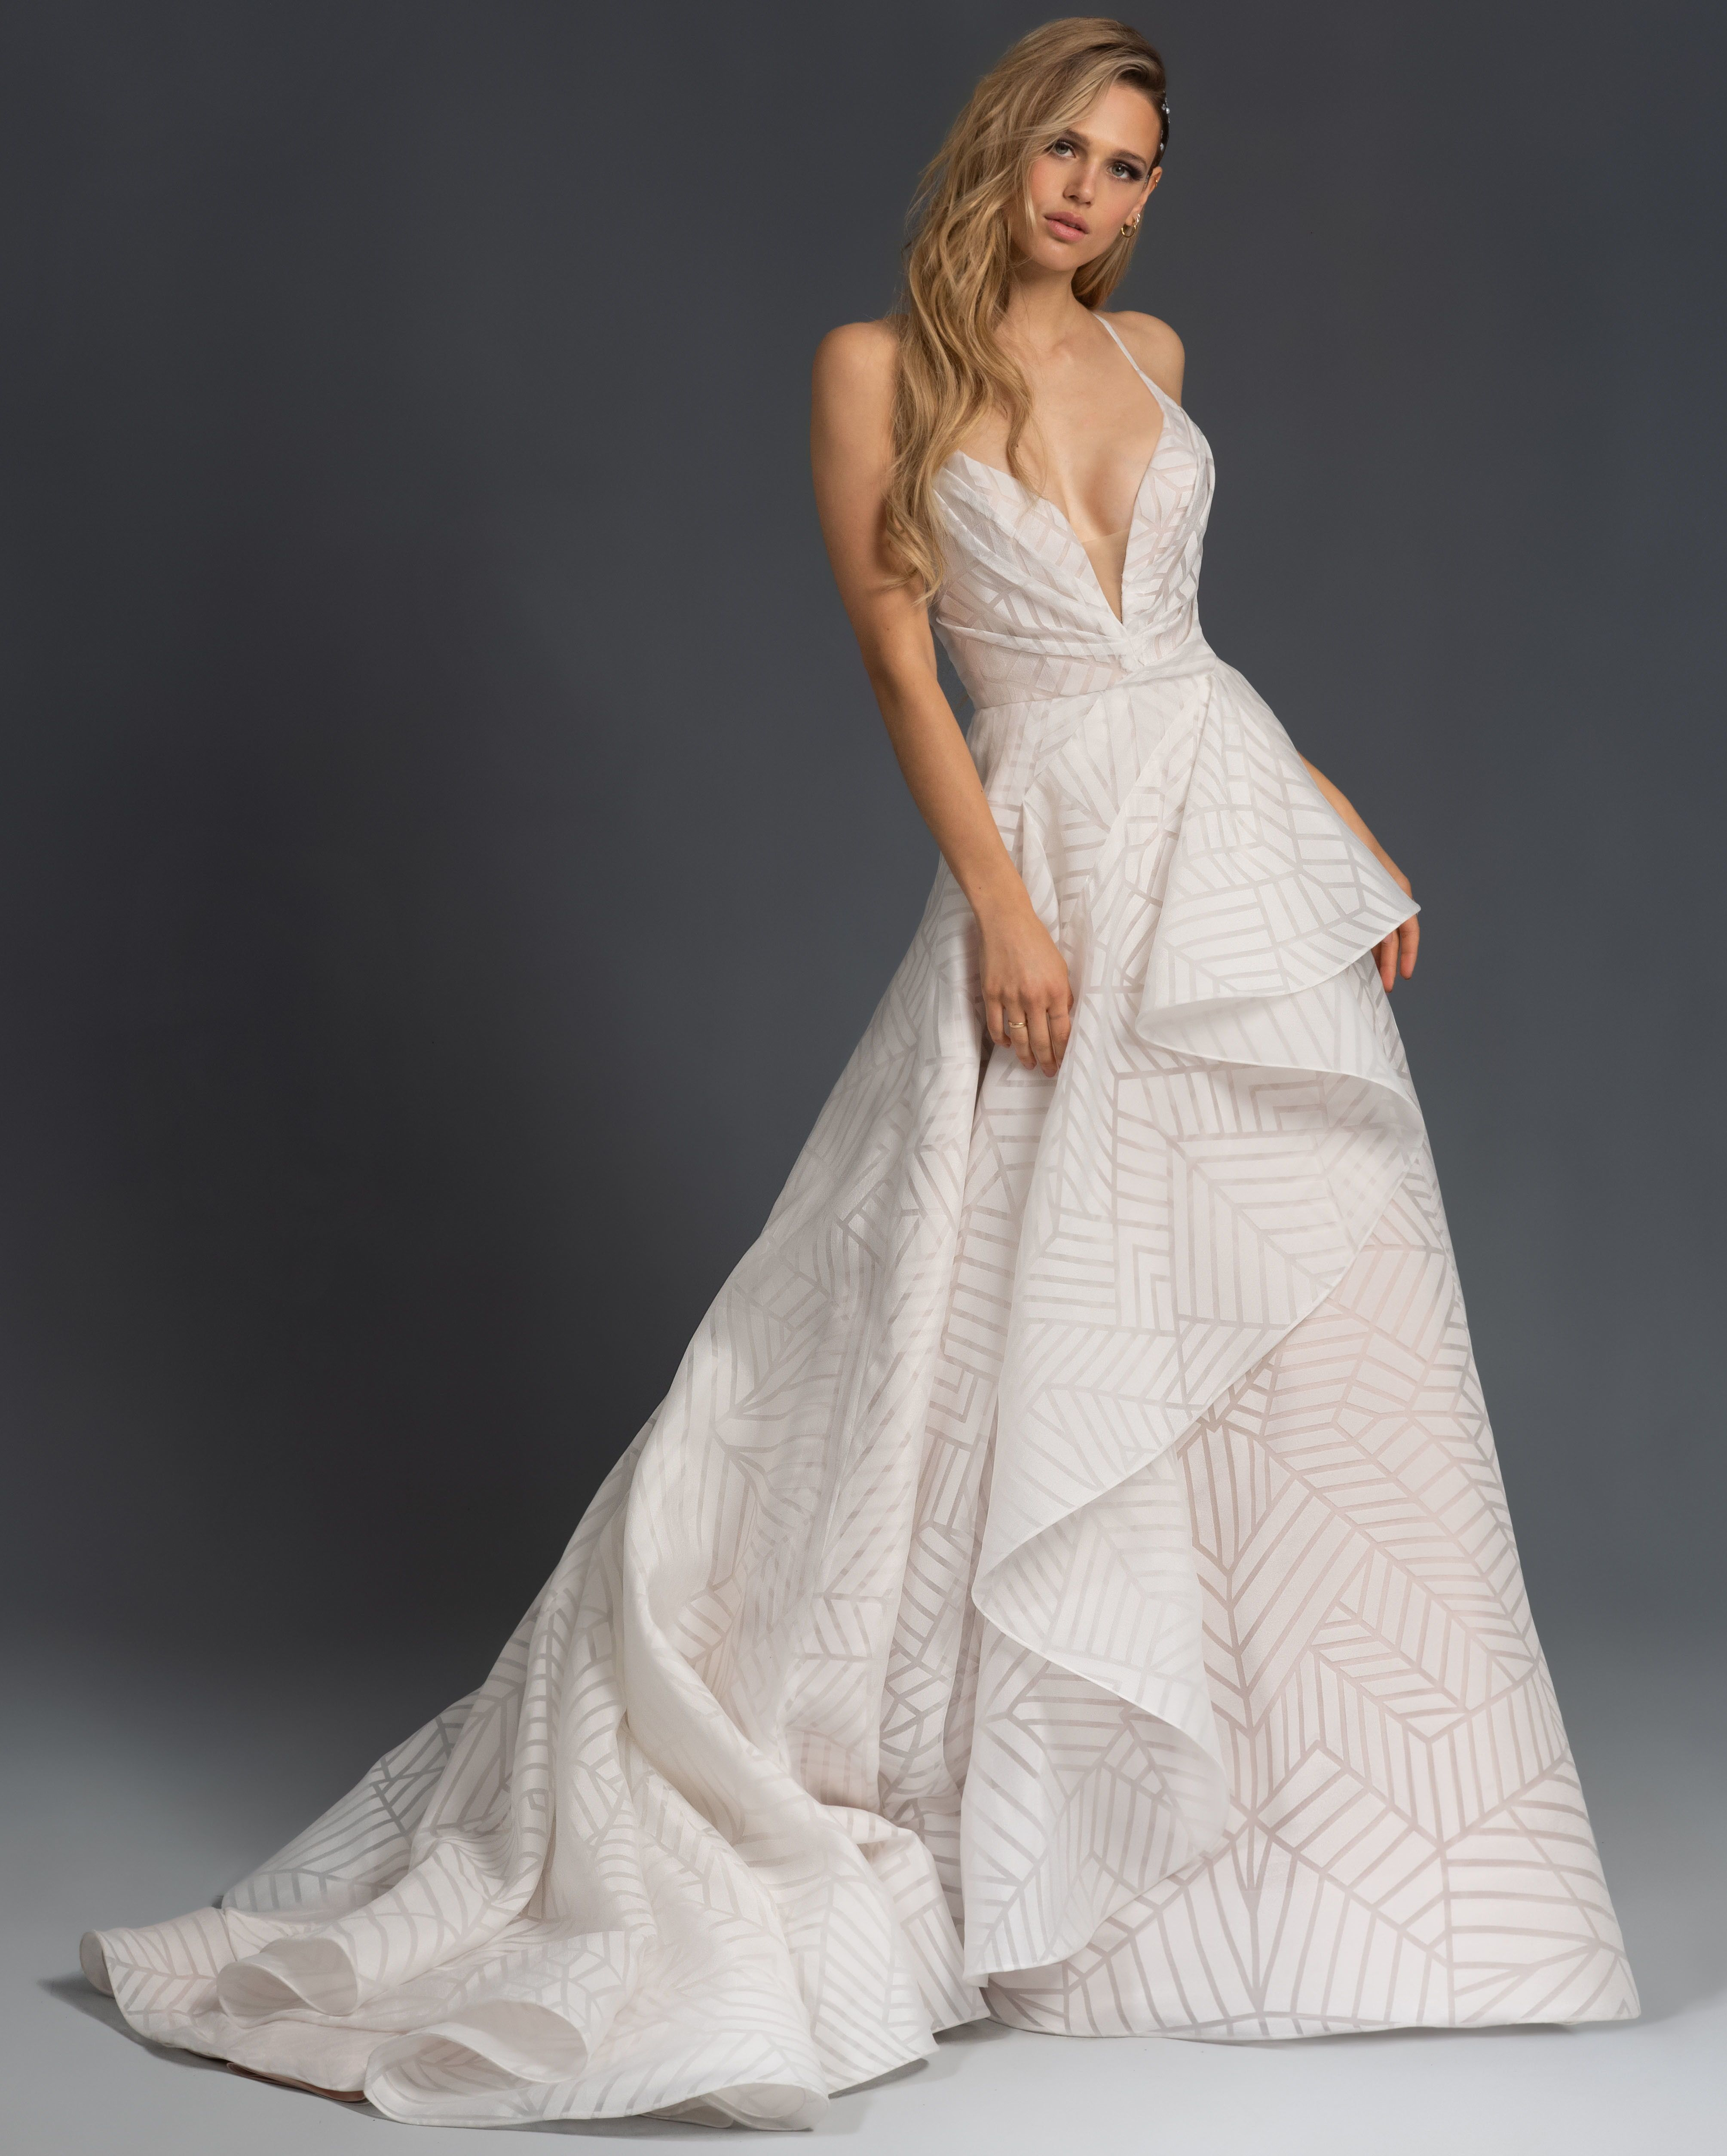 Hayley Paige Spring 2020 Charles A Line Wedding Dress With Draped Bodice Plunging Sw Unusual Wedding Dresses Hayley Paige Wedding Dress Bridal Fashion Week